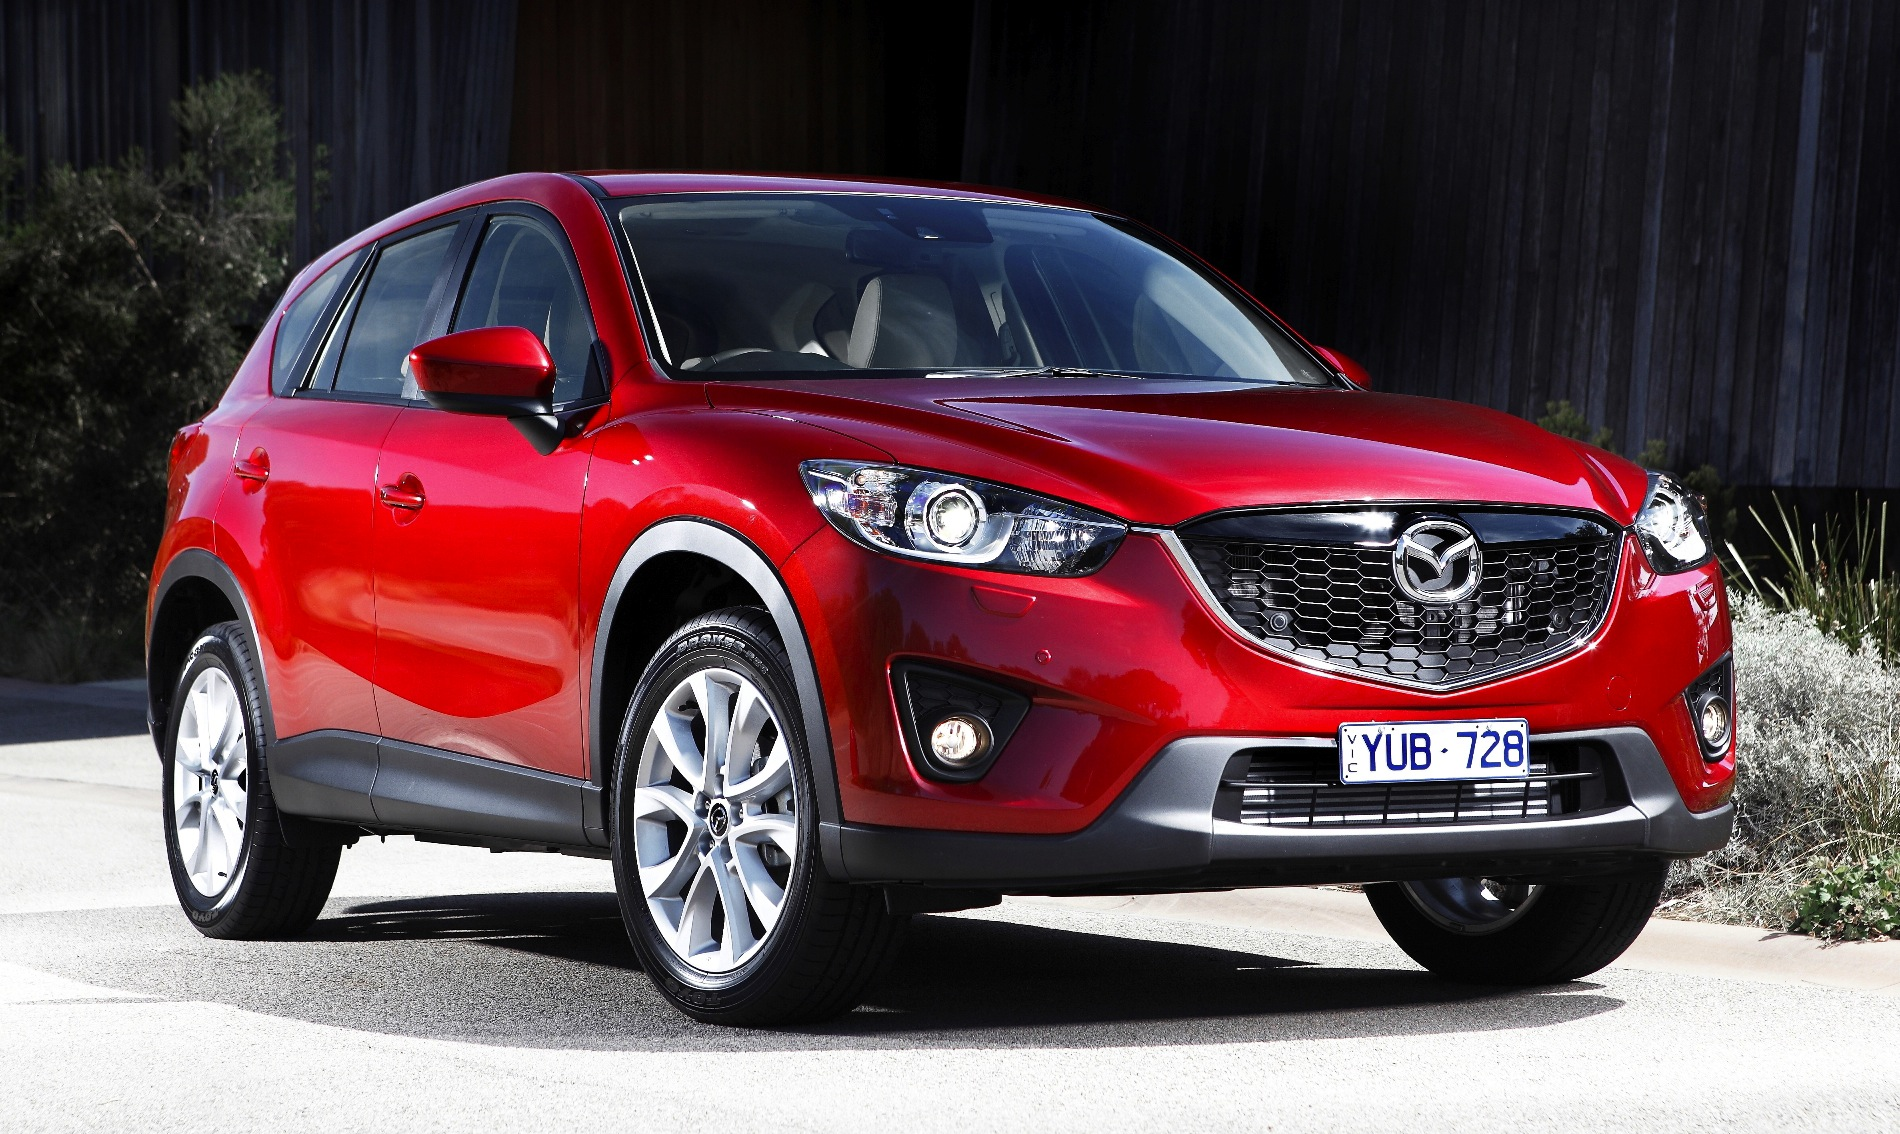 mazda cx 5 to get petrol power boost photos 1 of 2. Black Bedroom Furniture Sets. Home Design Ideas